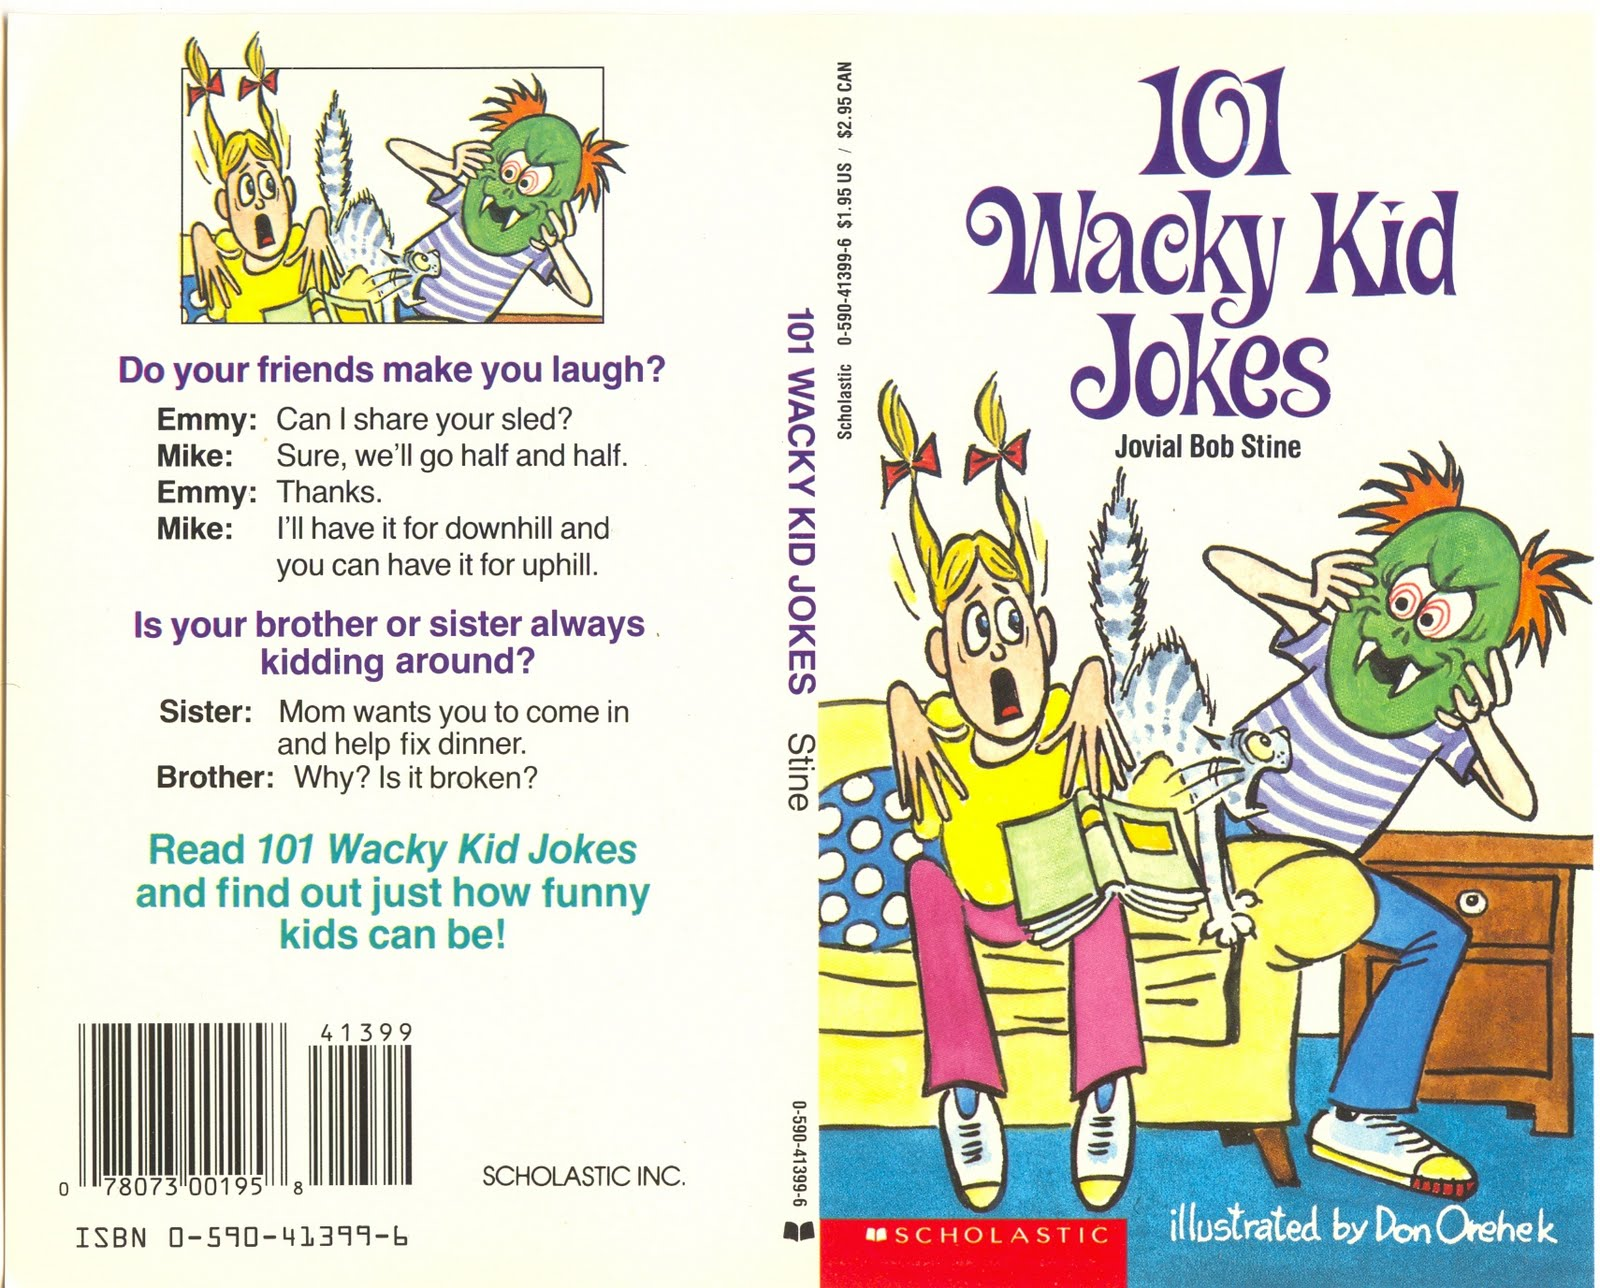 Don Orehek Cartoons: 261. 101 Wacky Kid Jokes